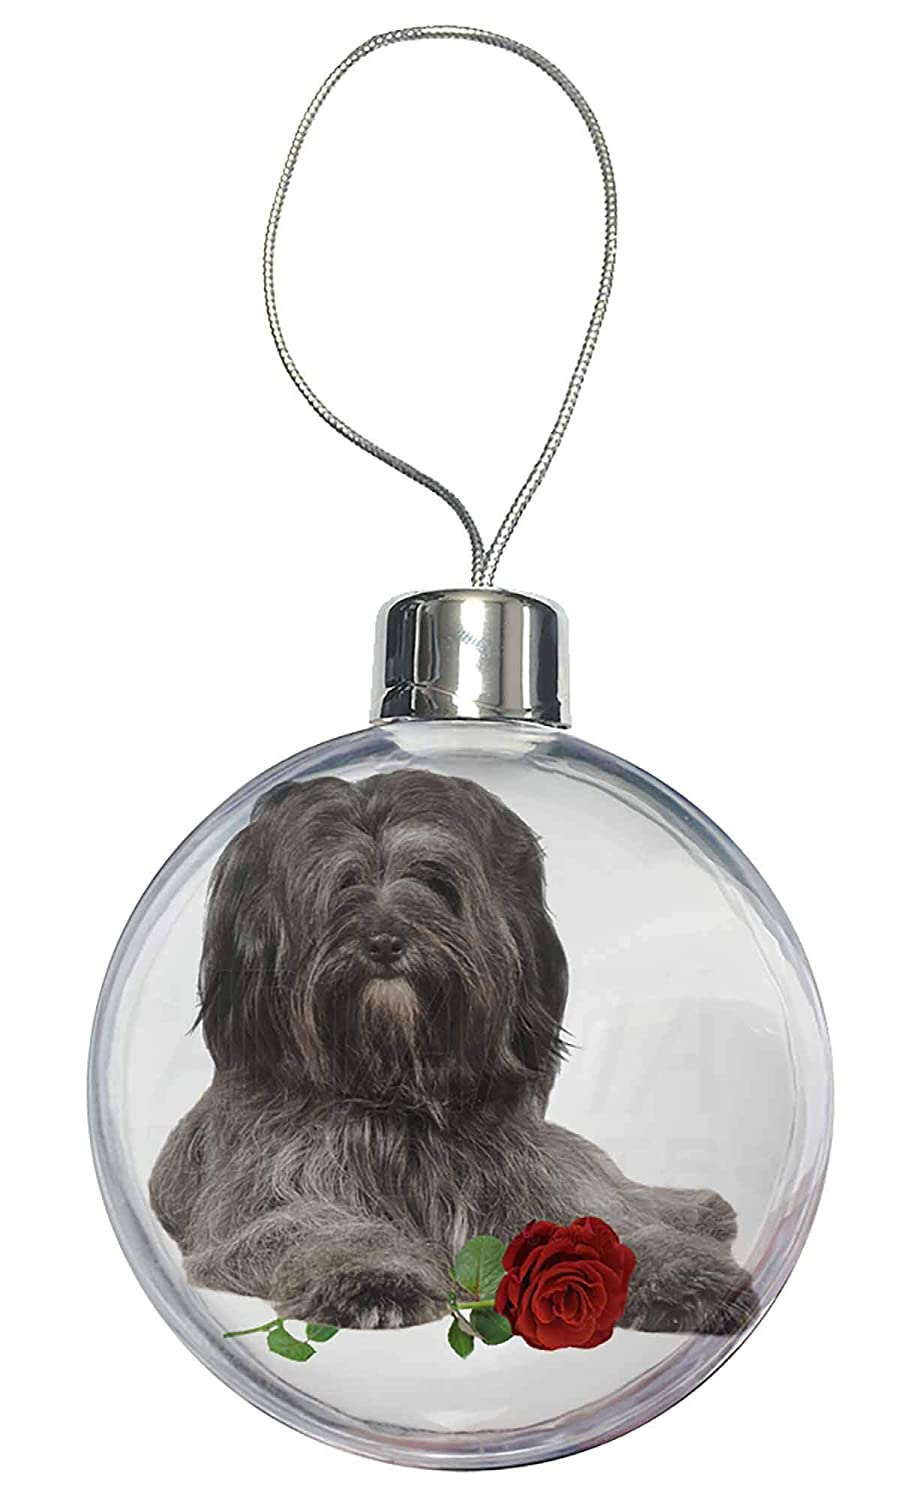 AD-TT2RCB Tibetan Terrier with Red Rose Christmas Tree Bauble Decoration Gift